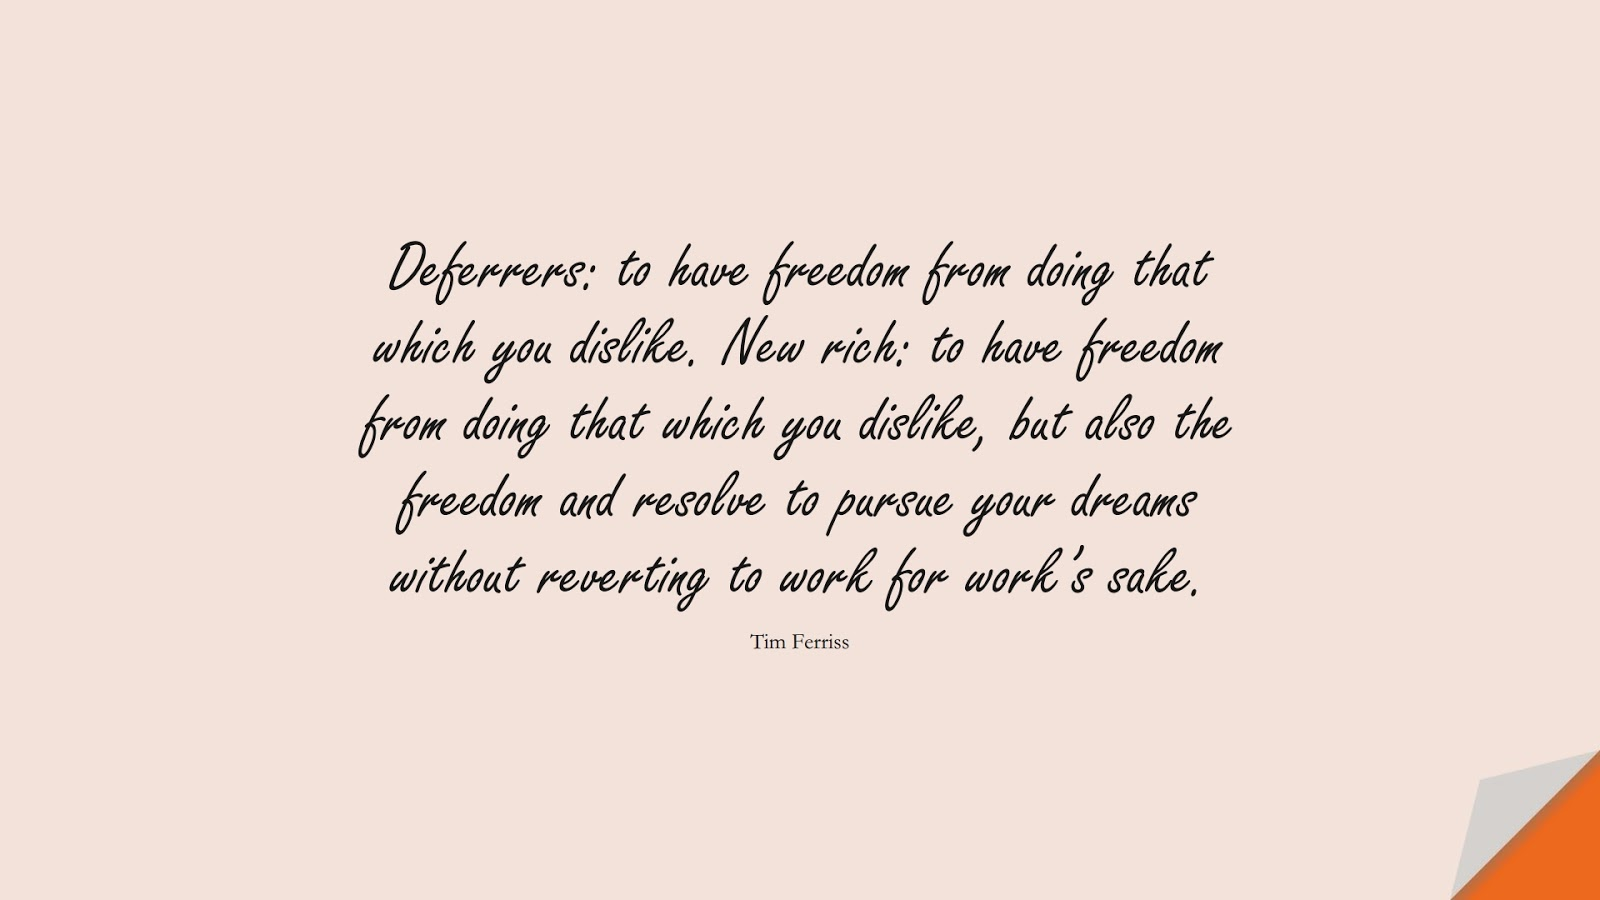 Deferrers: to have freedom from doing that which you dislike. New rich: to have freedom from doing that which you dislike, but also the freedom and resolve to pursue your dreams without reverting to work for work's sake. (Tim Ferriss);  #TimFerrissQuotes